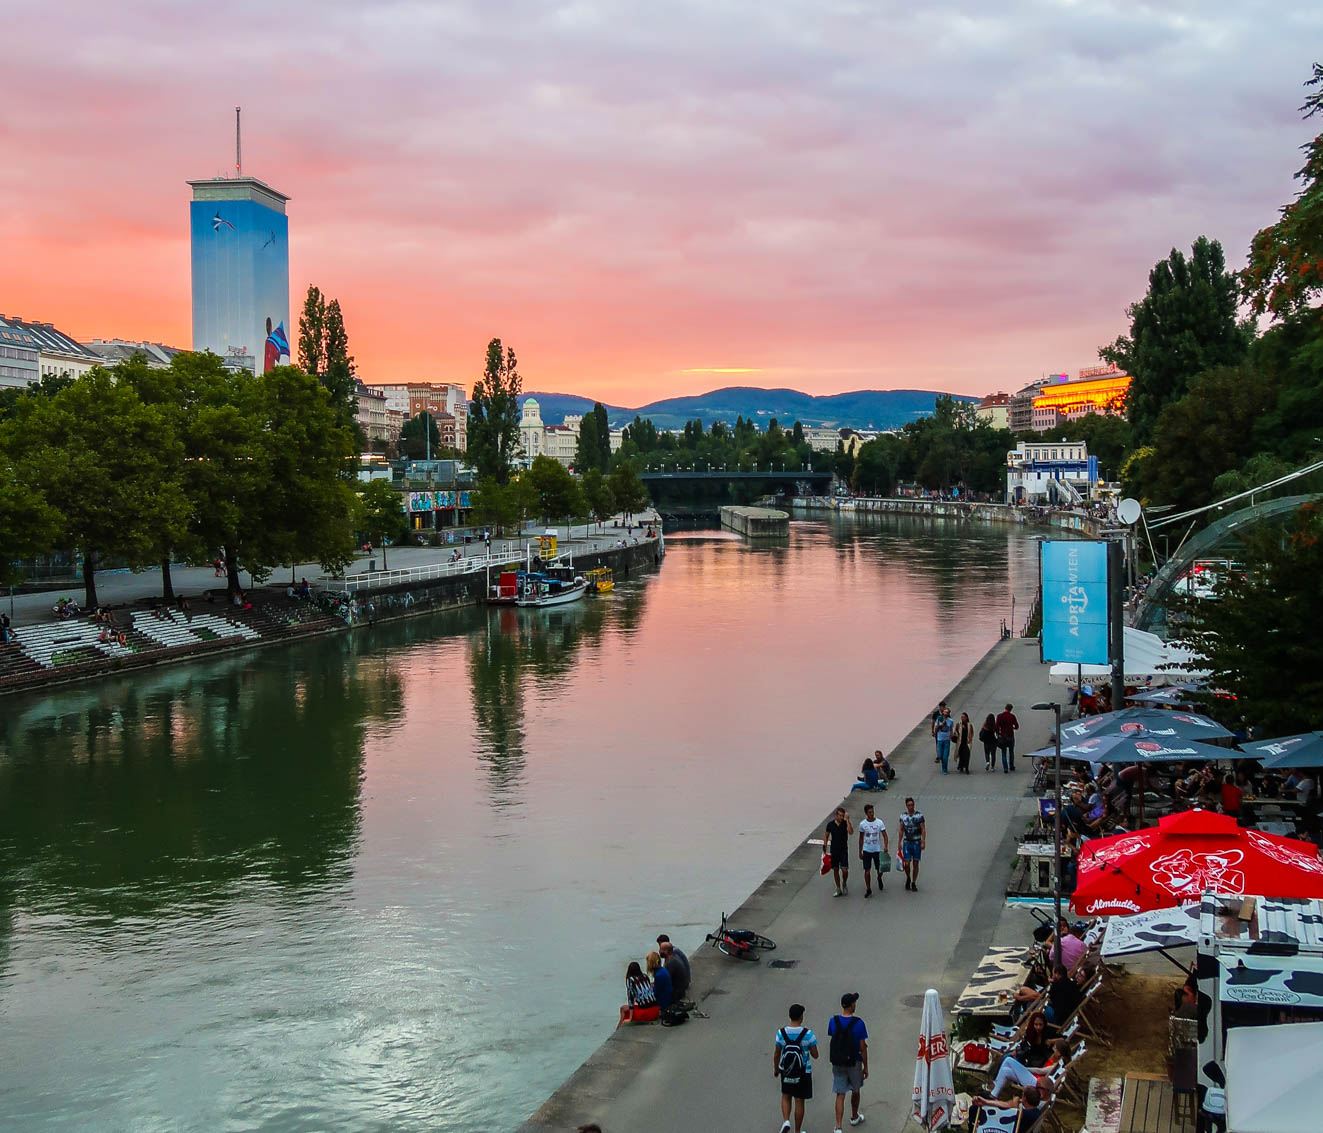 Vienna Danube Canal at Sunset